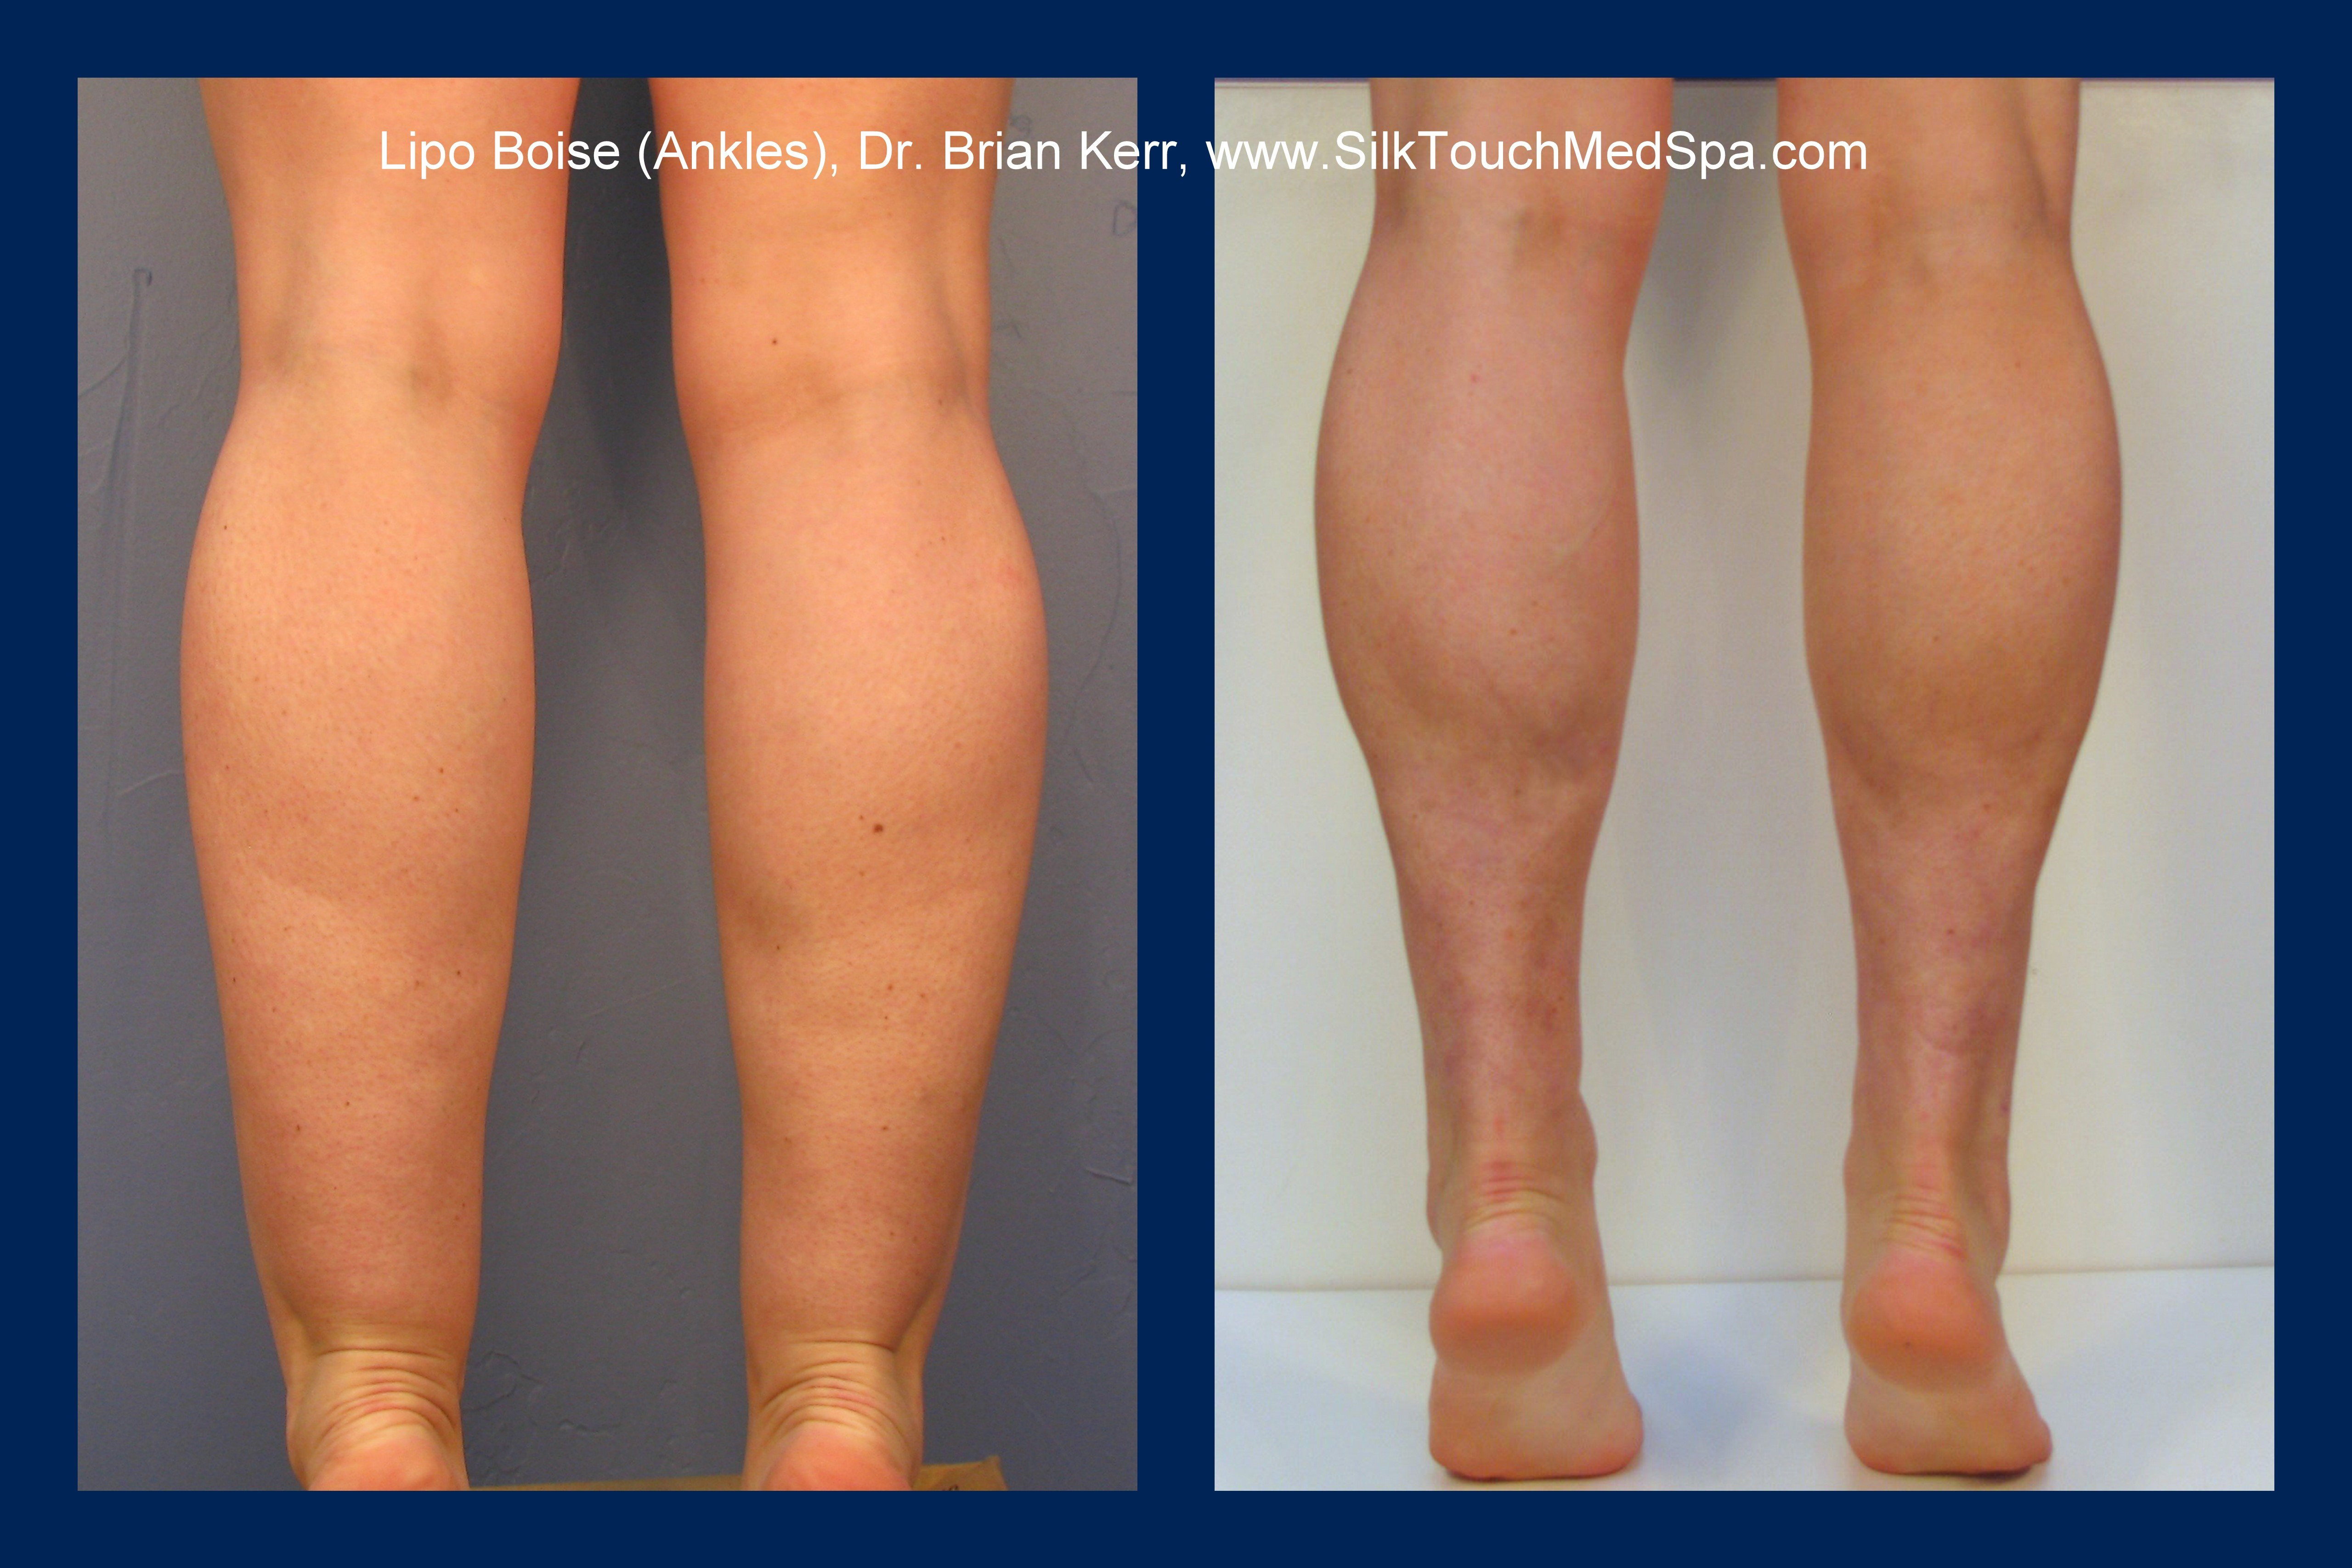 Smartlipo, Vaser, ankle liposuction, Dr. Brian Kerr, Silk Touch Med Spa, Boise